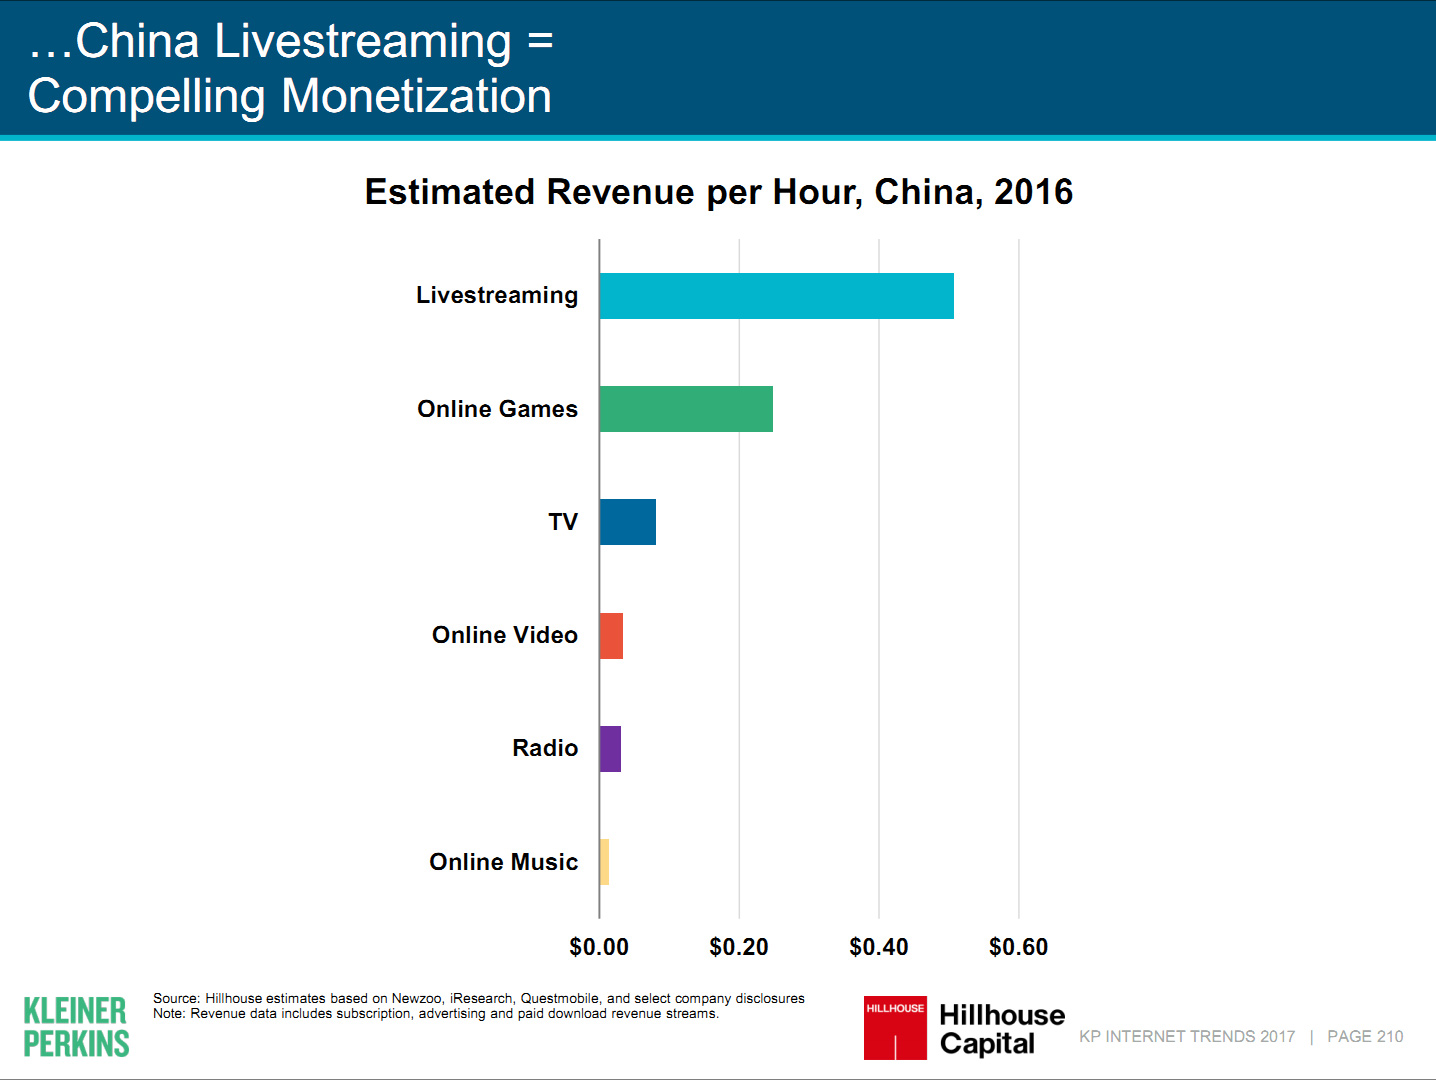 Livestreaming industry in China